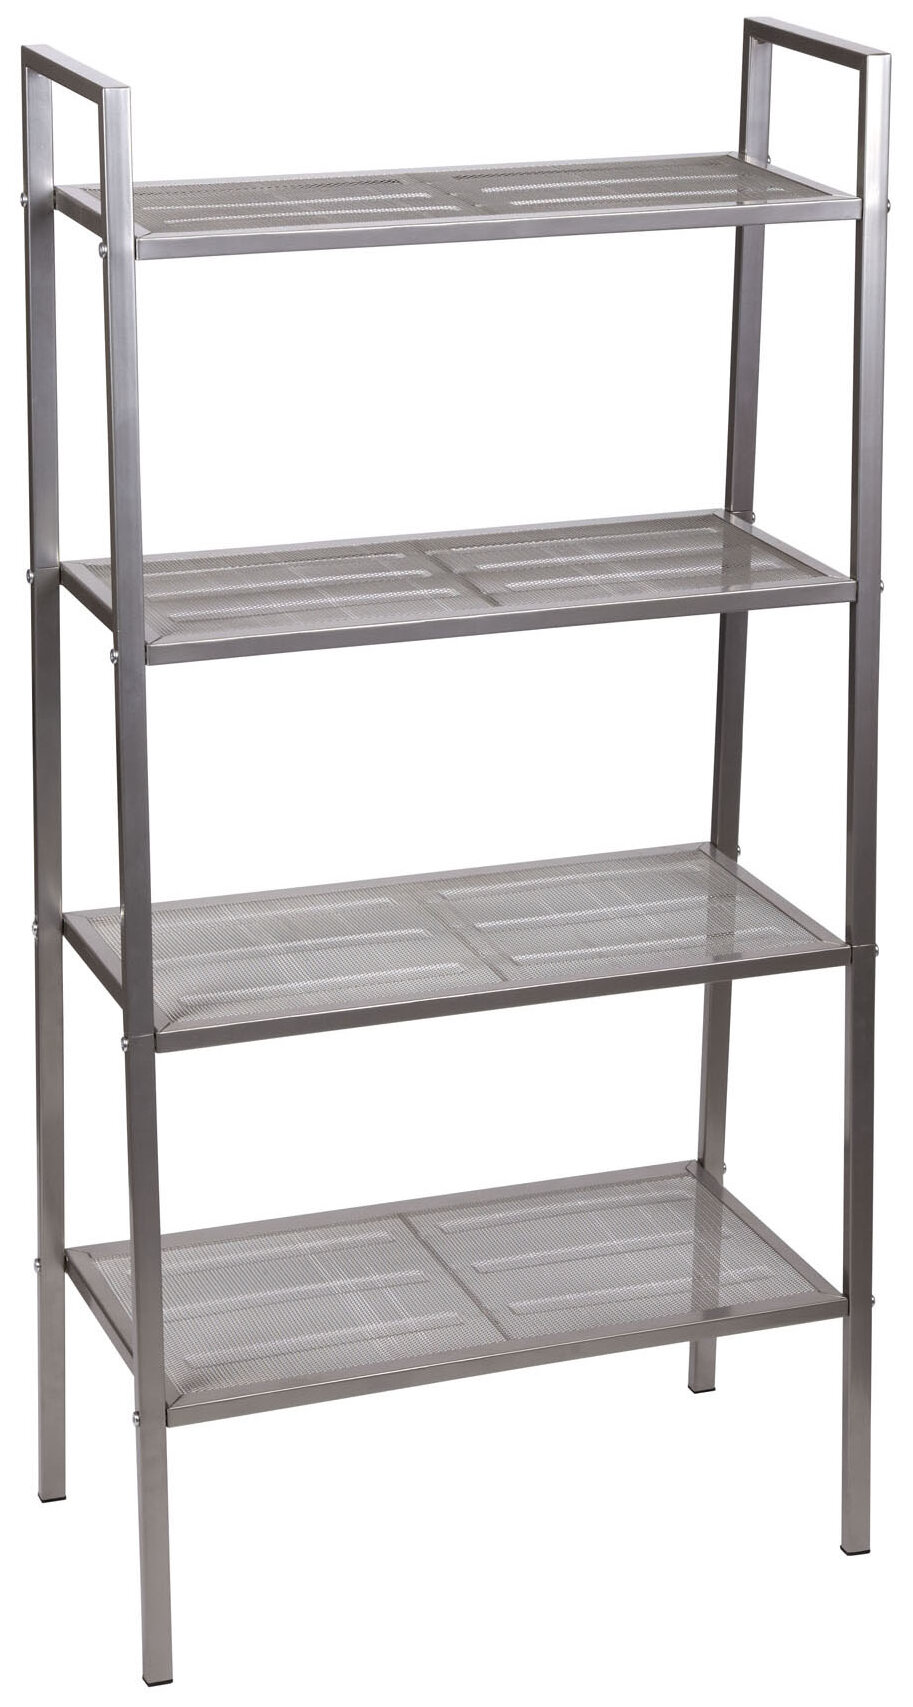 Household Essentials Free Standing Four Shelf Etagere Bookcase U0026 Reviews |  Wayfair